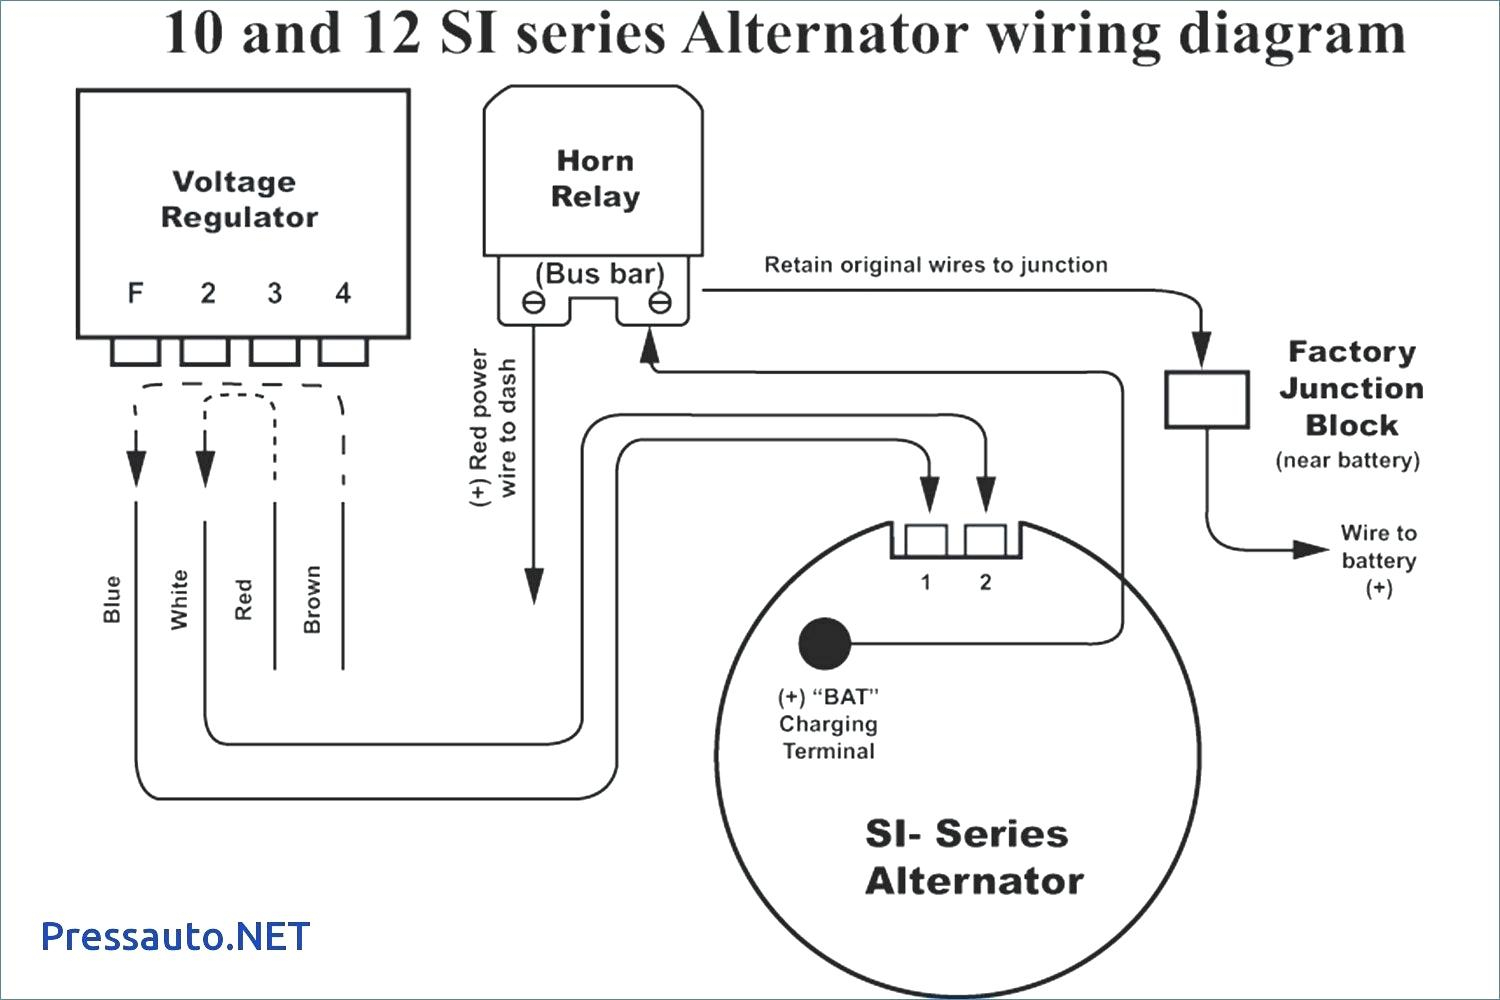 Gm External Voltage Regulator Wiring | Manual E-Books - External Voltage Regulator Wiring Diagram